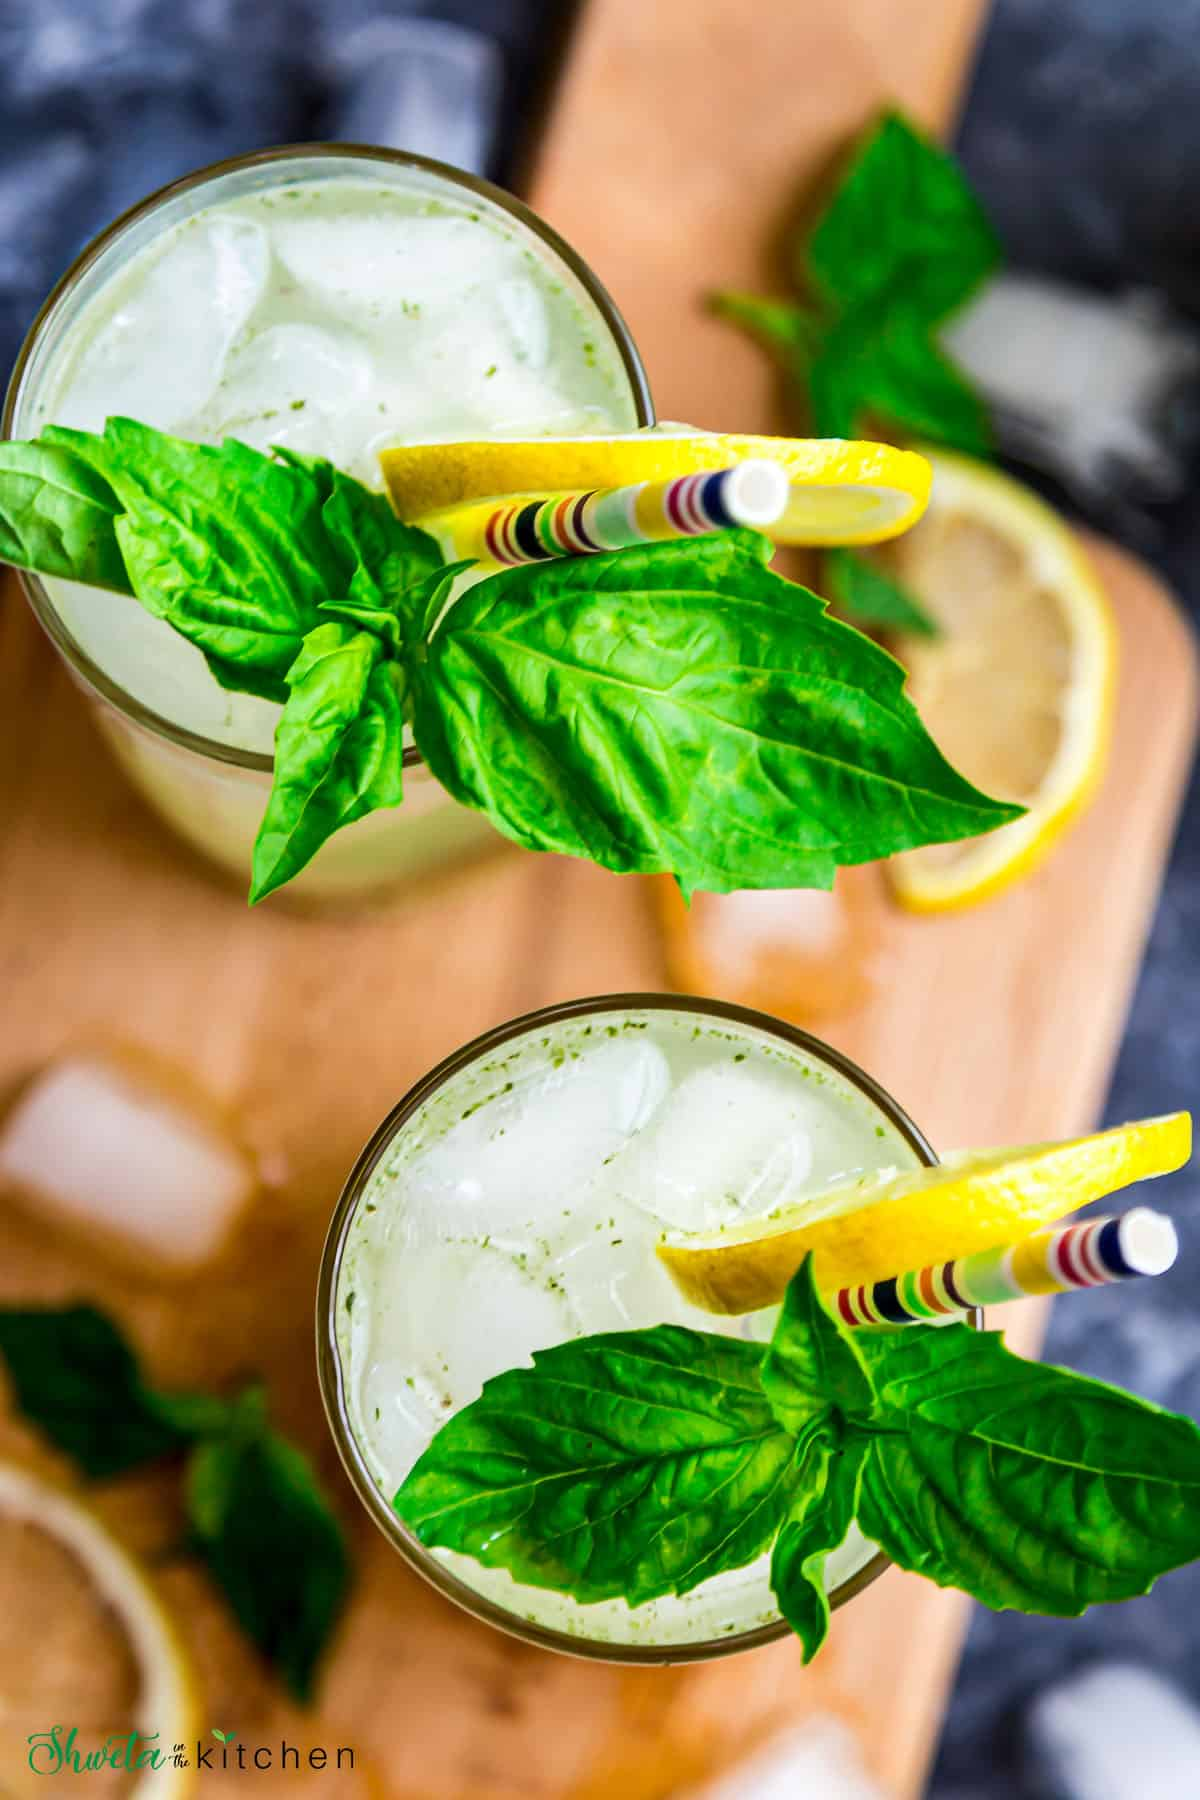 Top view of Two glasses of basil ginger lemonade garnished with lemon and basil leaves